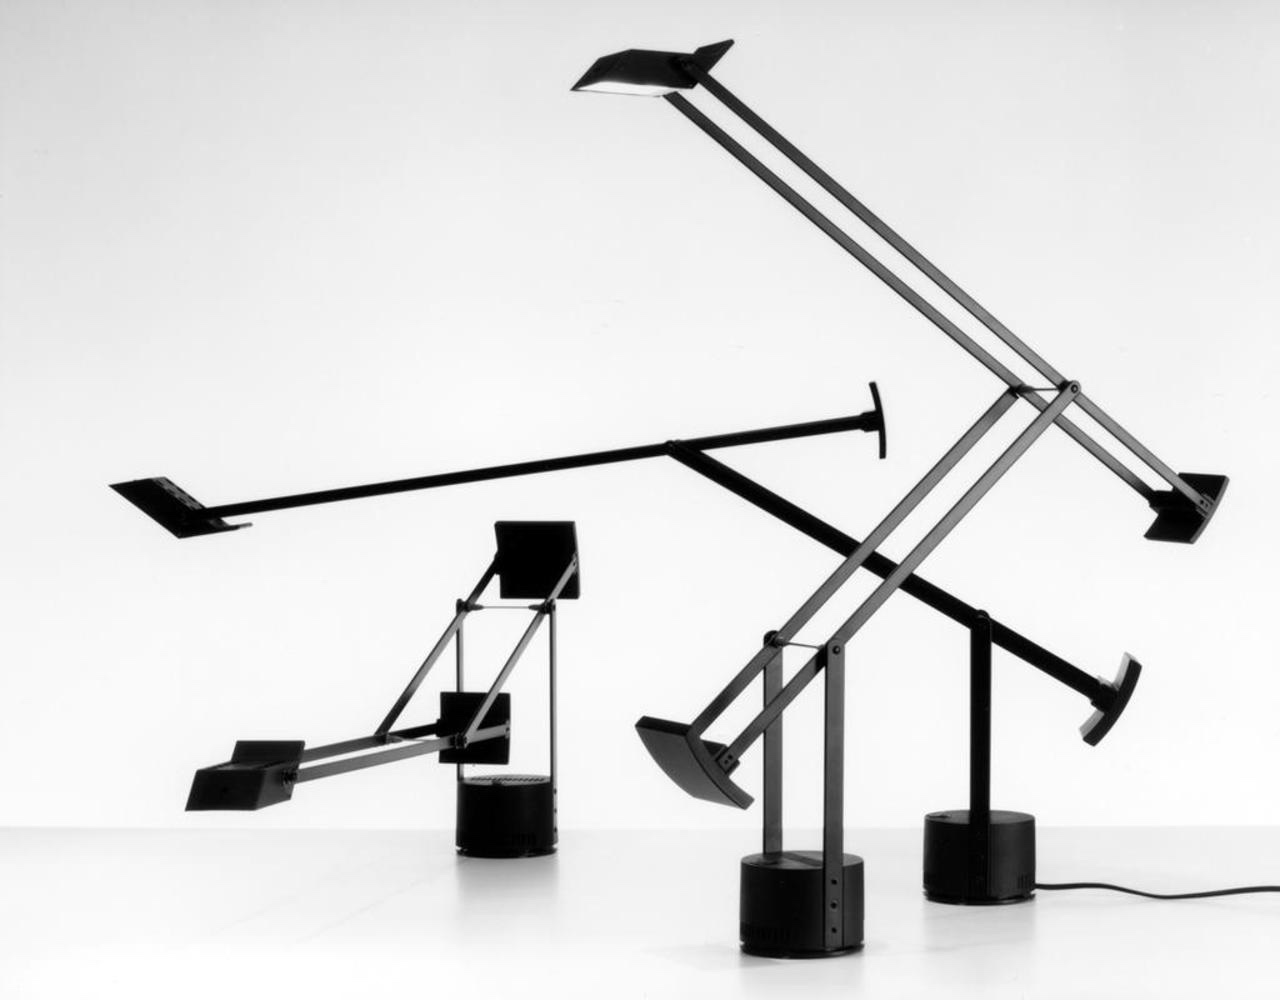 Tizio desk lamp (1972) for Artemide. Winner of the Prize Grand Prix Triennale XV 1974 and included in the Permanent Design Collection at MoMA. Image courtesy of Richard Sapper.